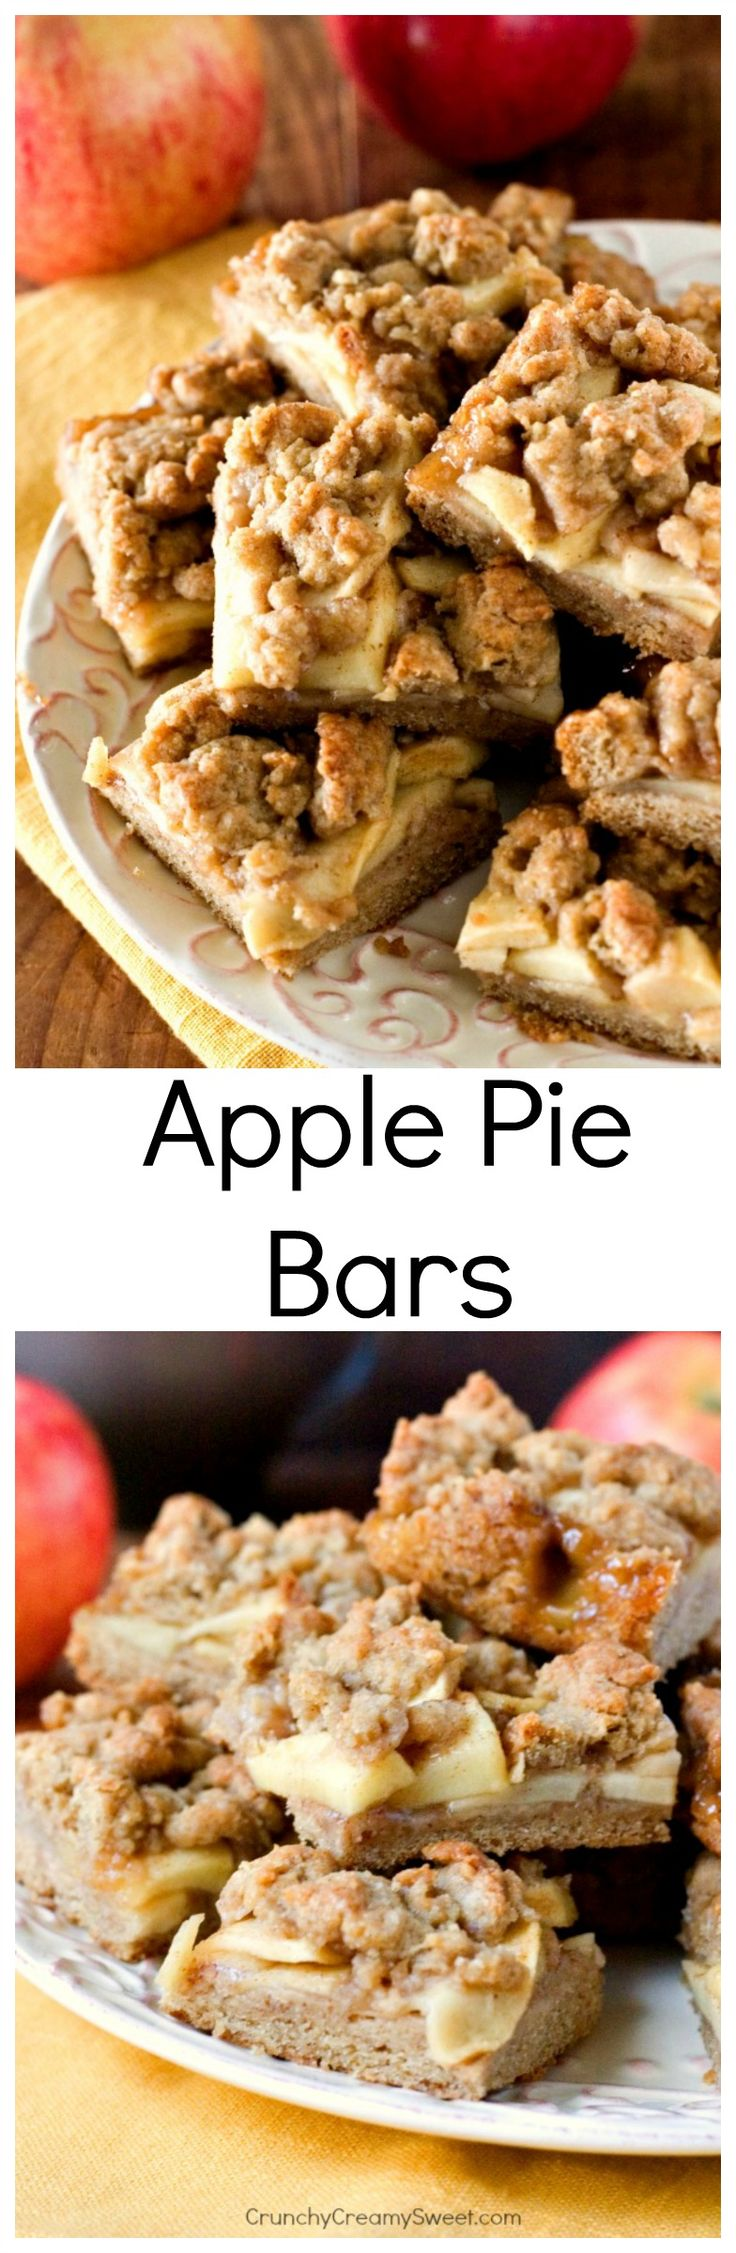 Apple Pie Bars - easy apple dessert made with brown sugar crust and topping and cinnamon sugar coated apple slices. You will love how delicious these bars are!